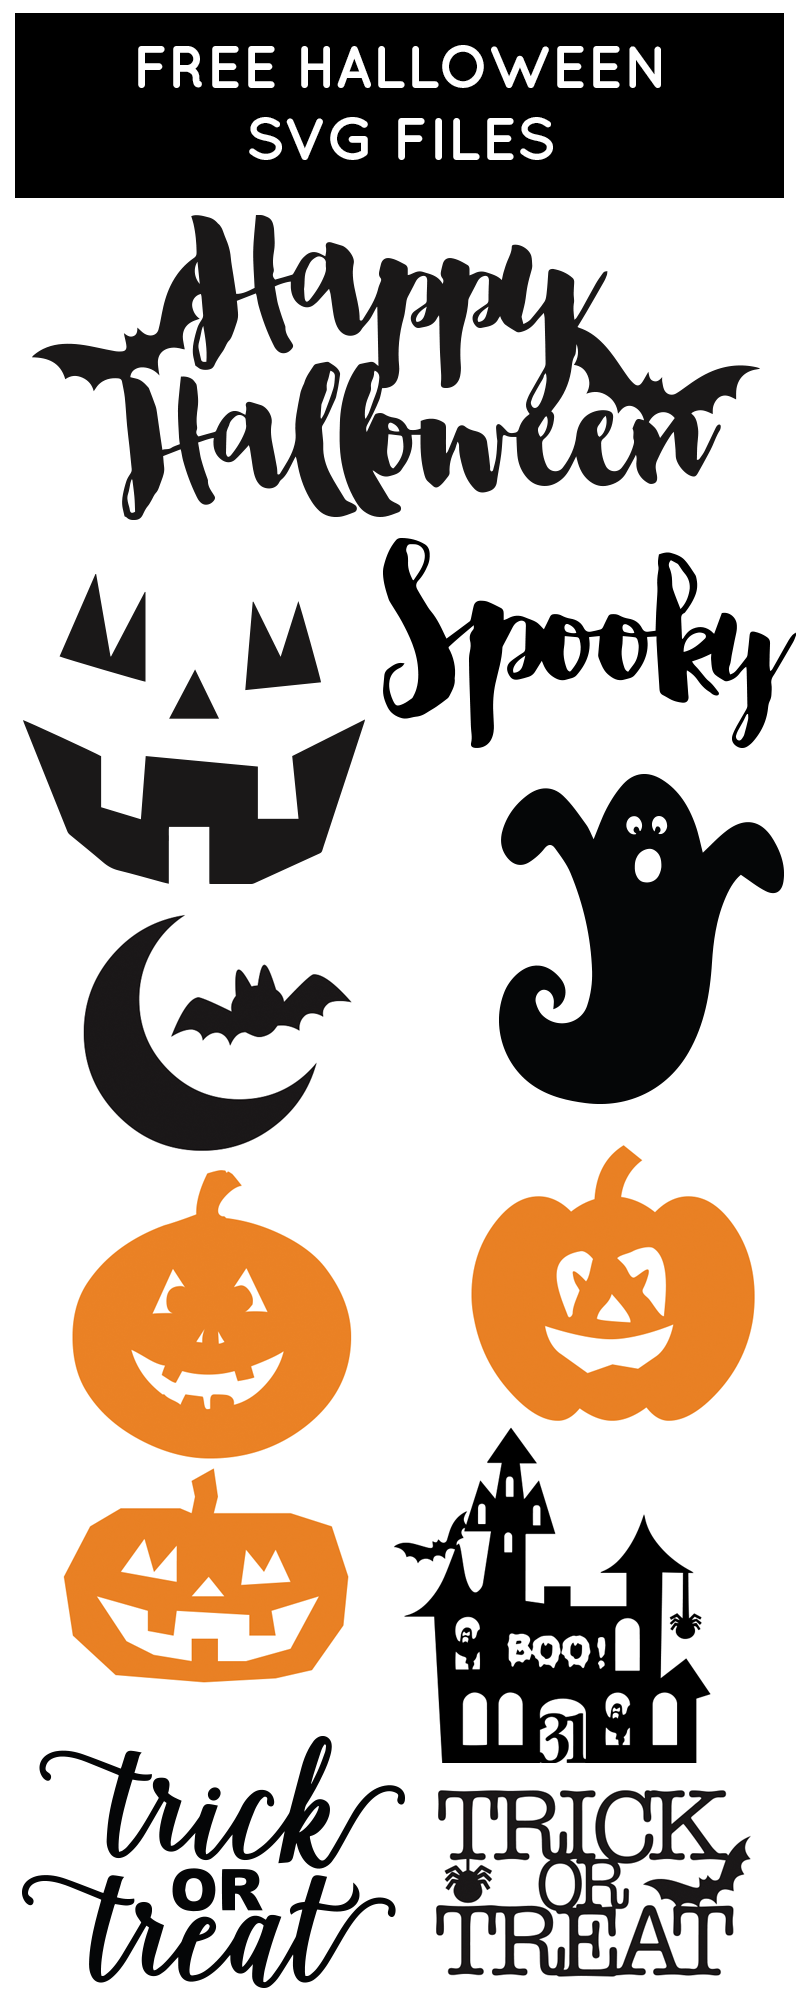 halloween svg free #143, Download drawings